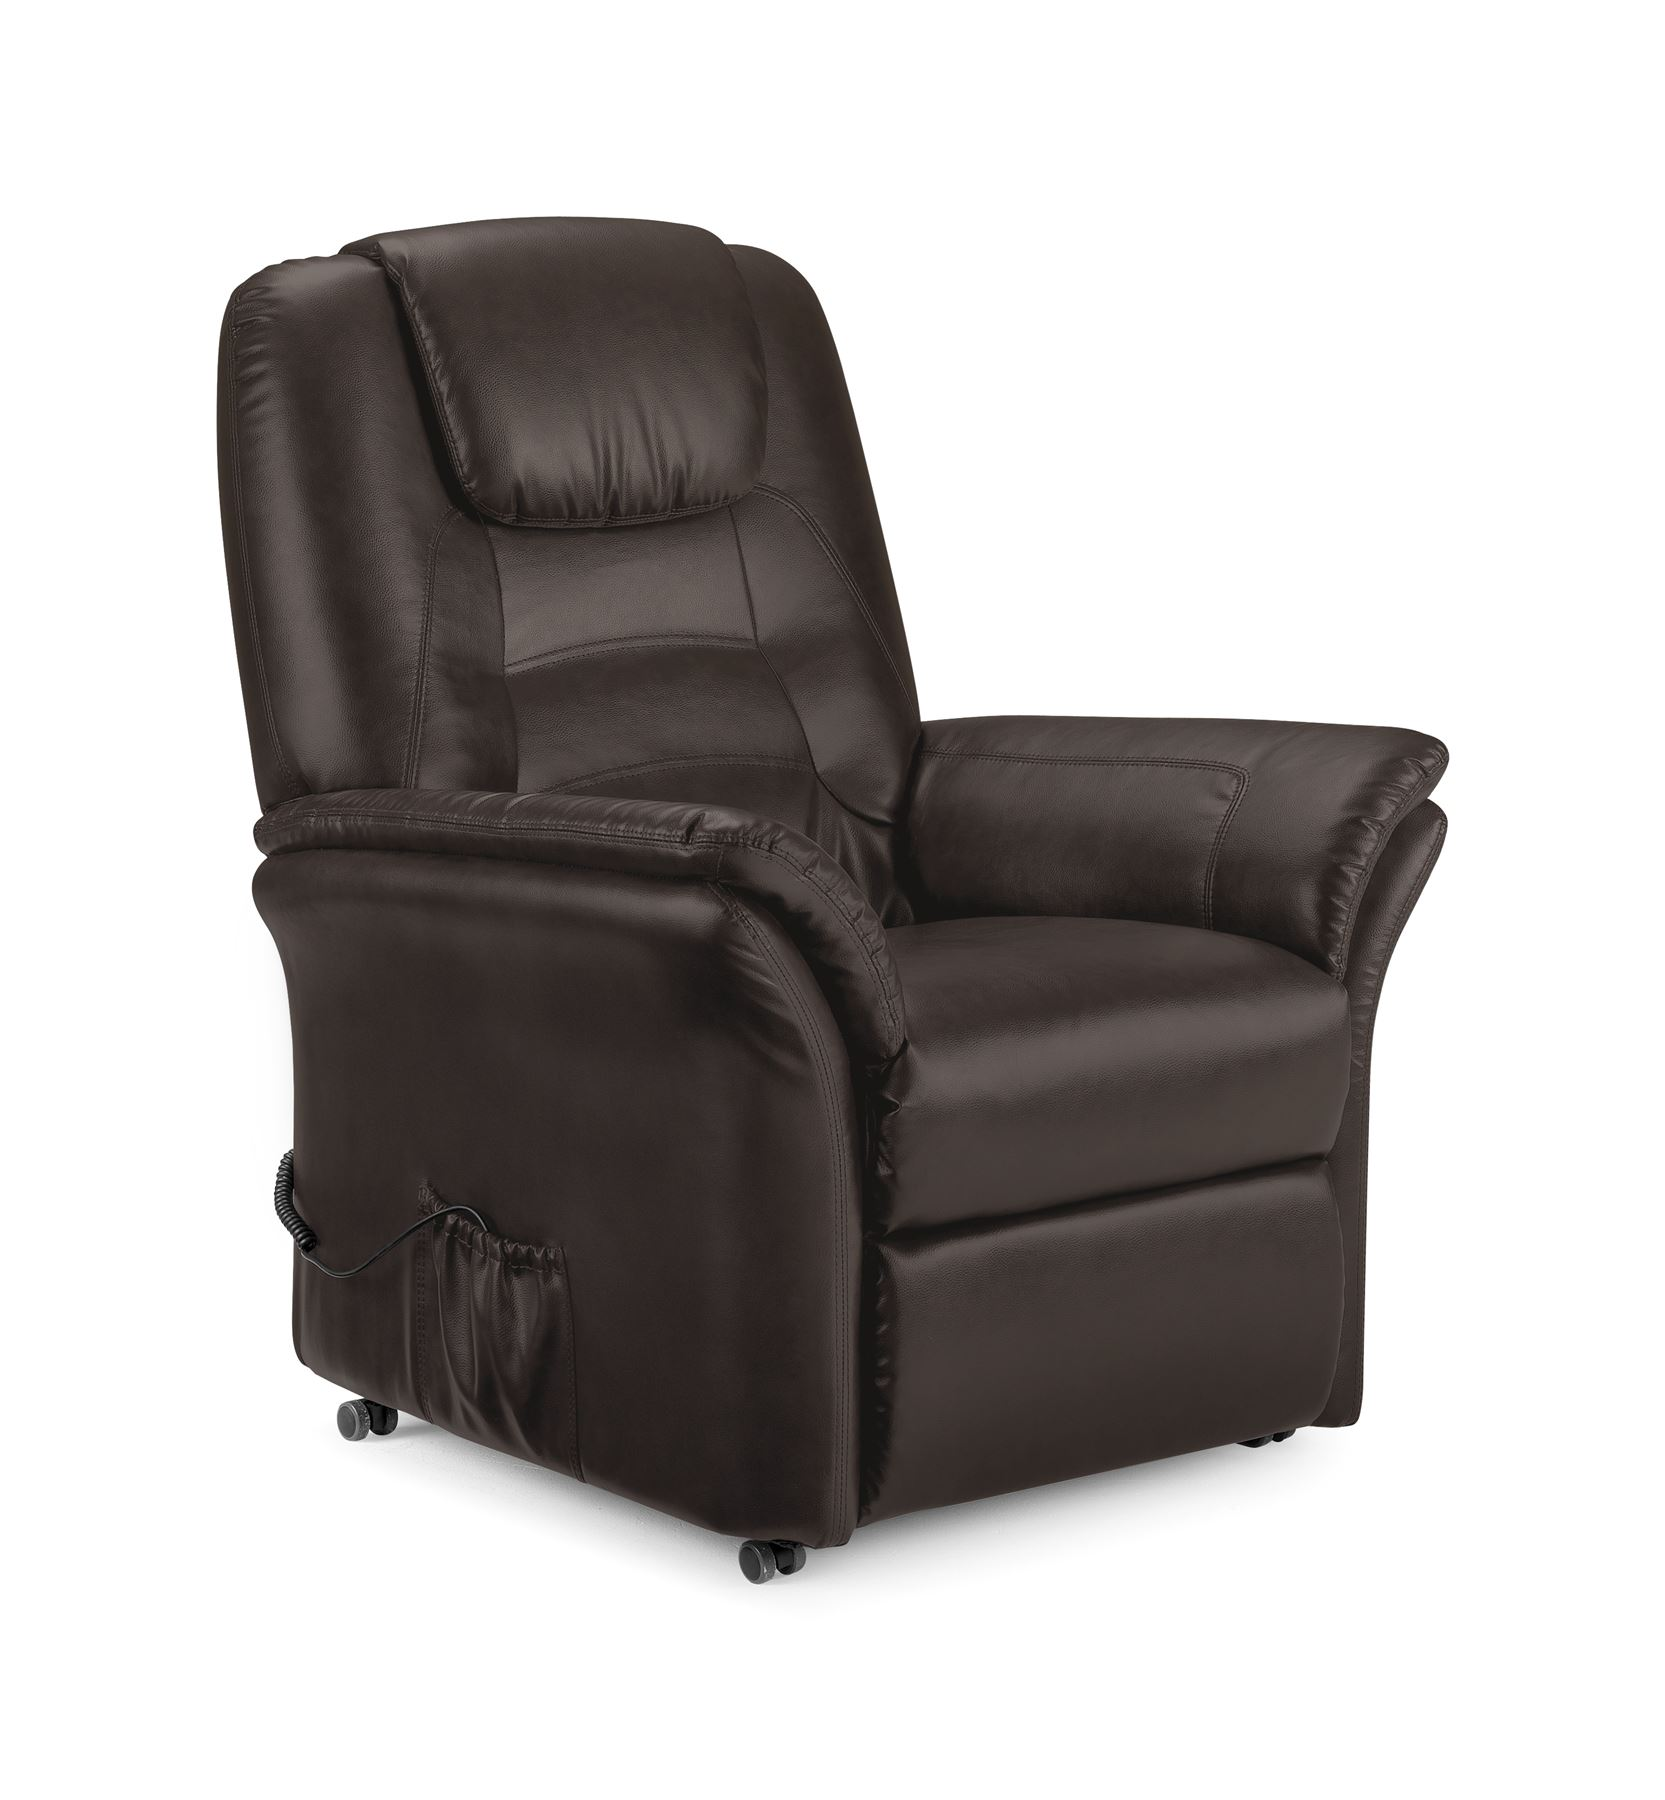 Riva Electric recliner Chair Brown Faux Leather NEW  eBay